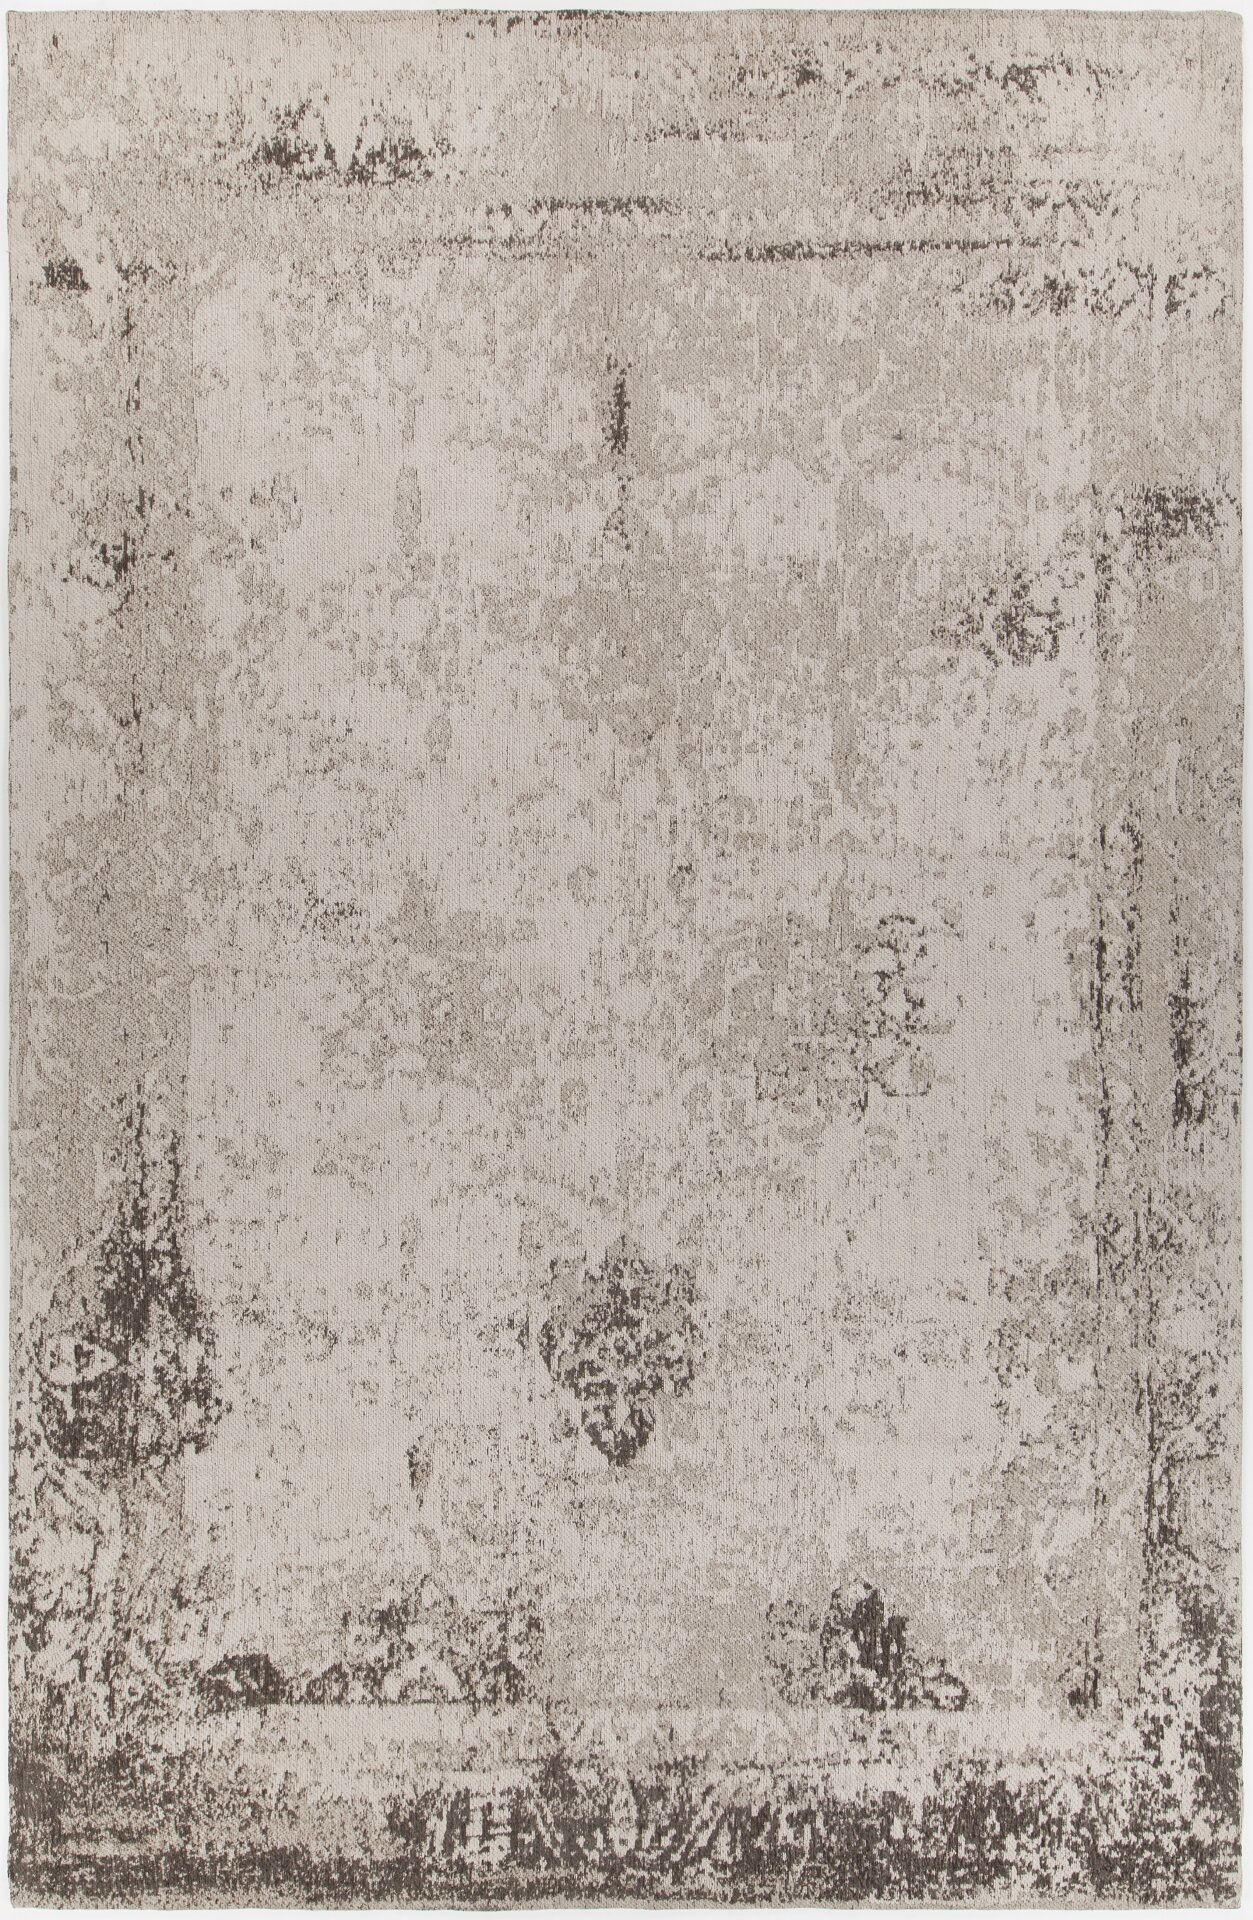 Paquet Hand-Woven Beige Area Rug Rug Size: Rectangle 7'9